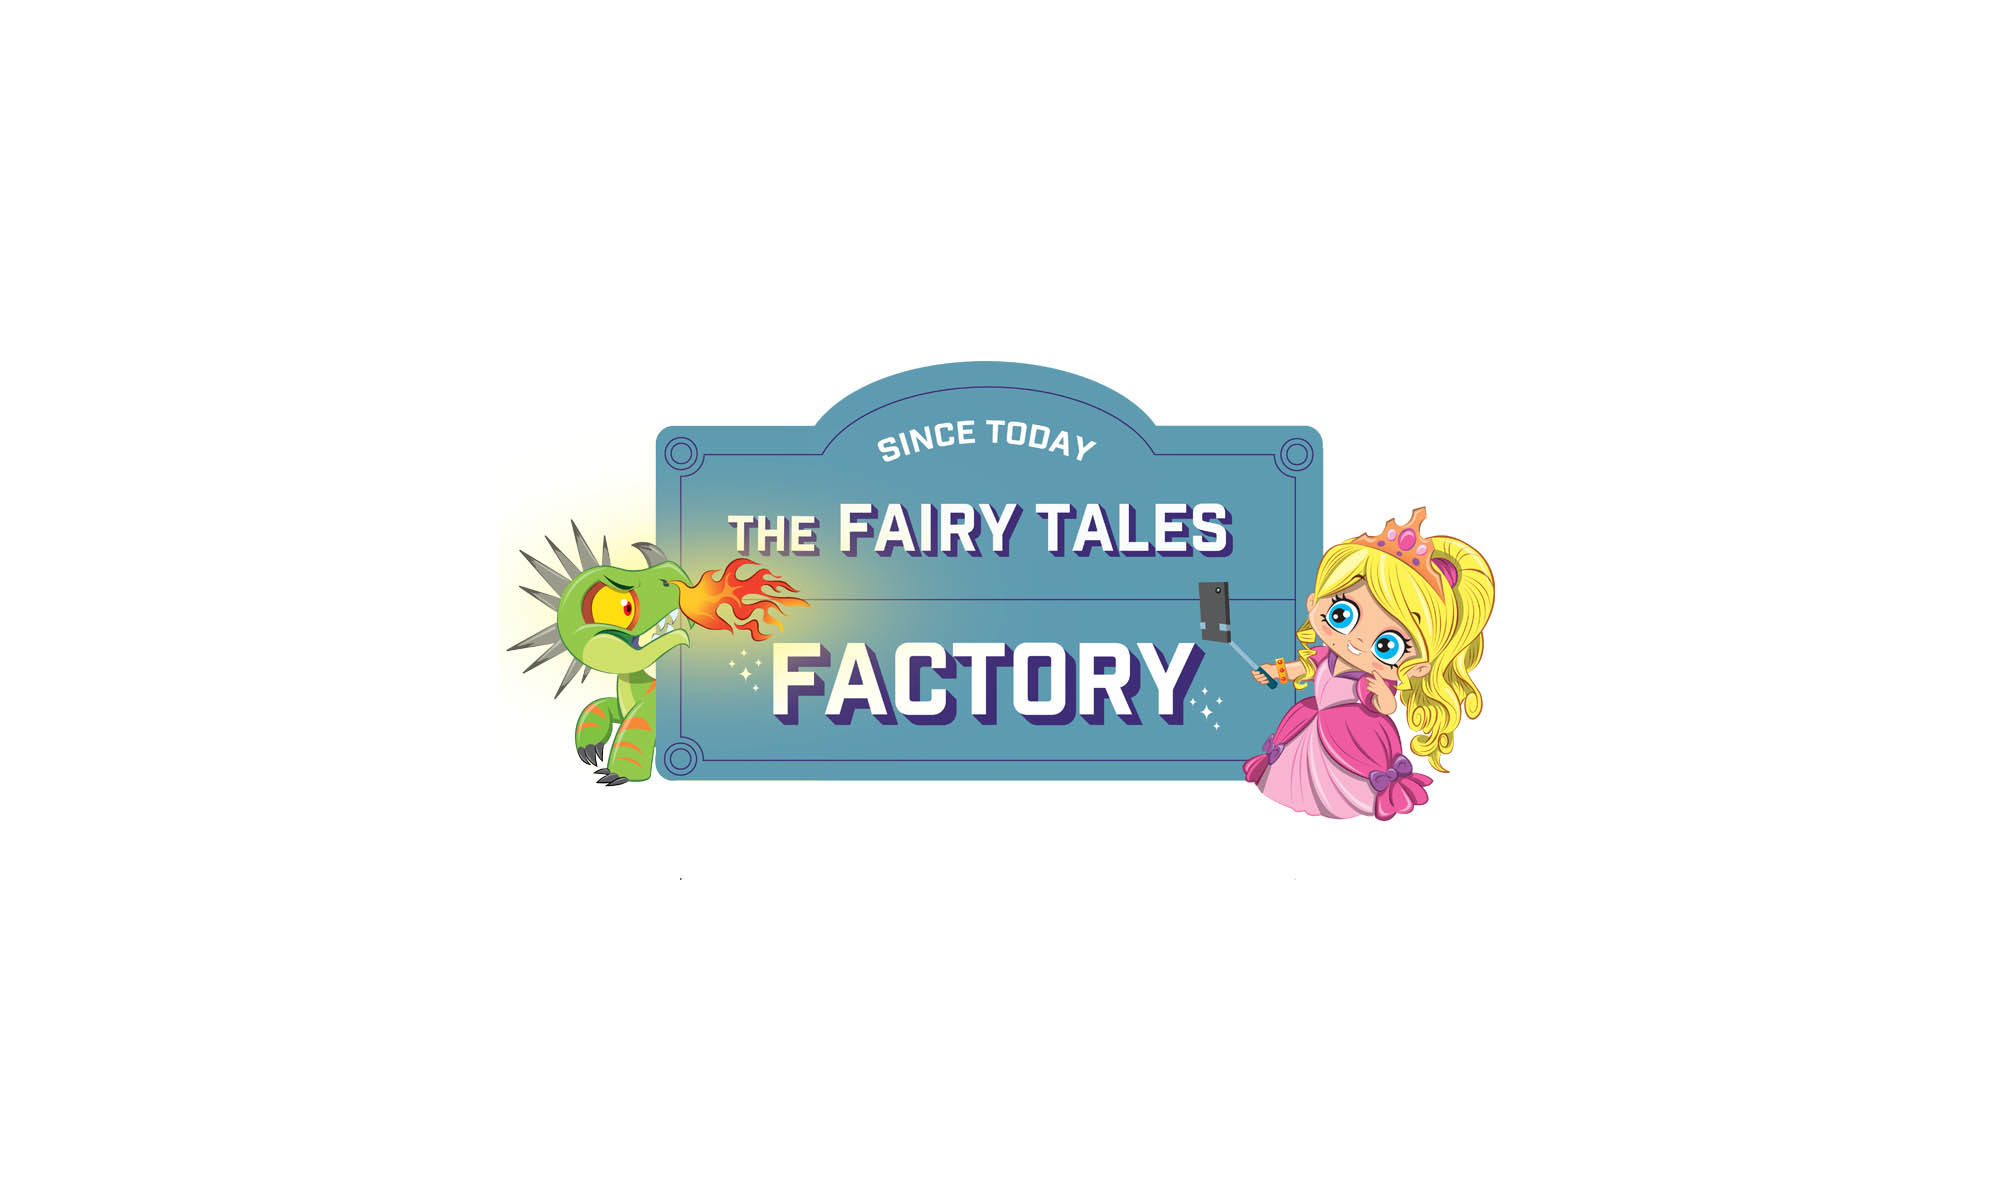 The Fairy Tales Factory